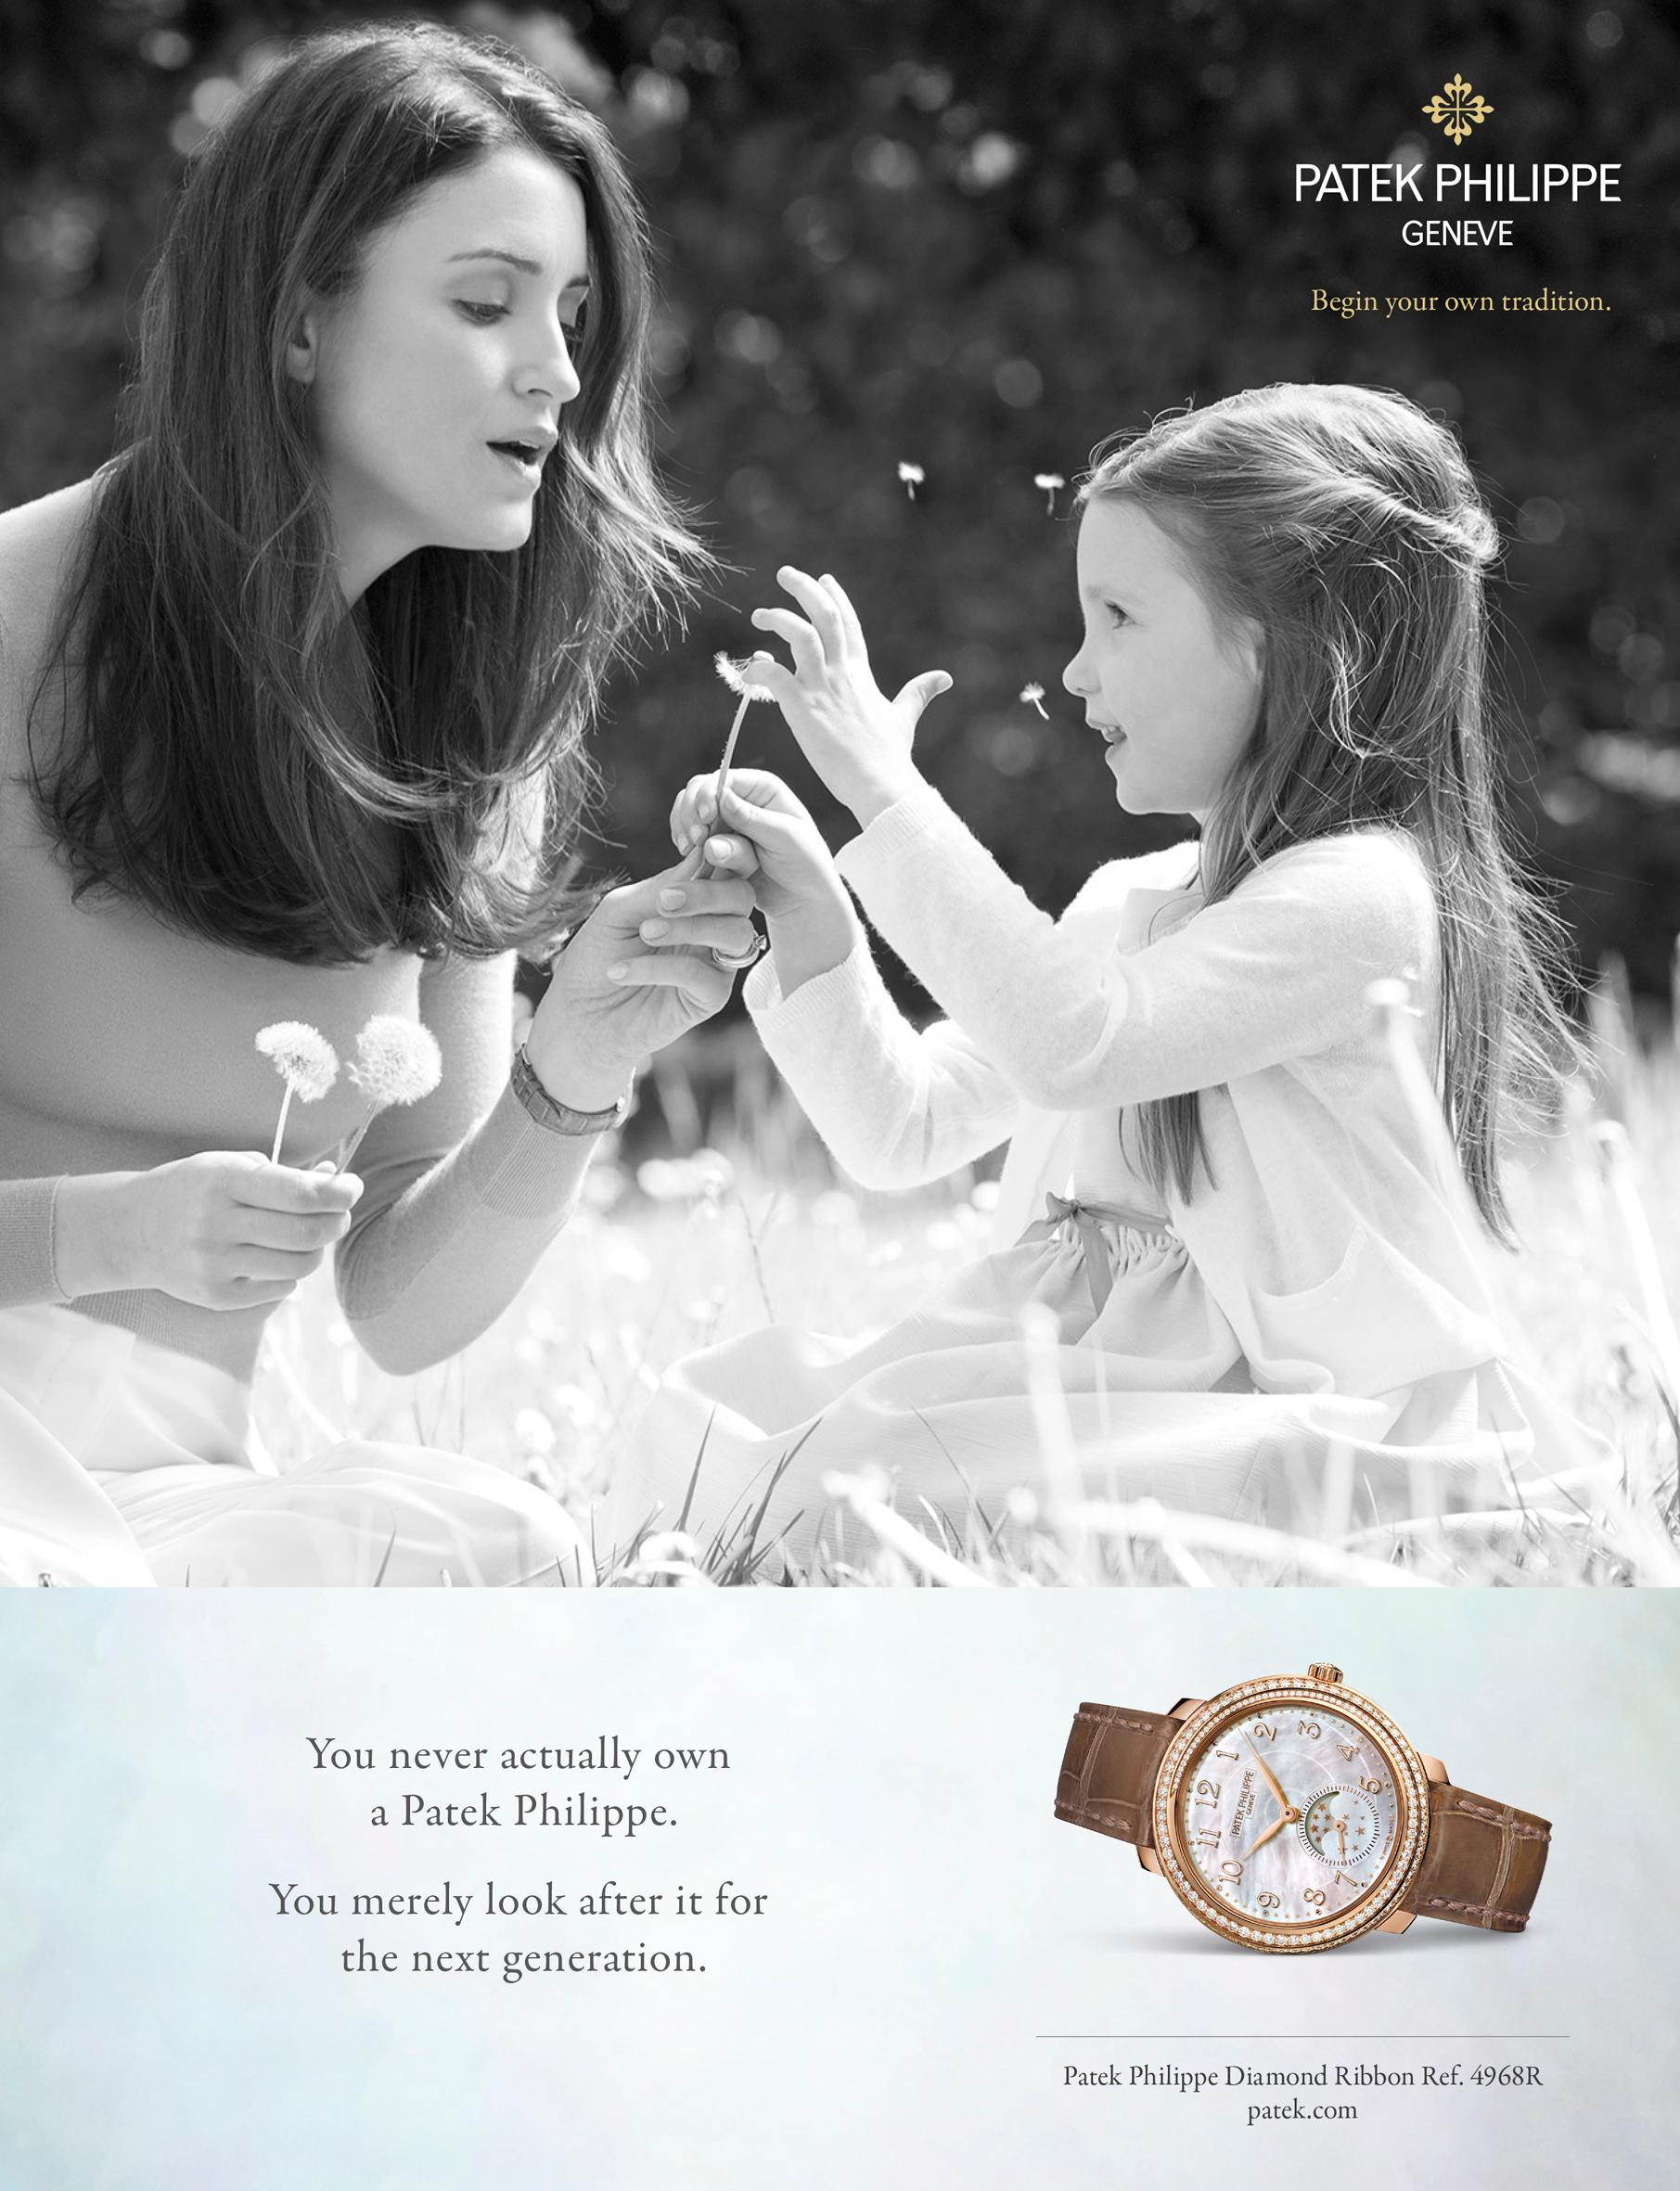 Patek's timeless storytelling of intergenerational ownership captures the moment within families so well.